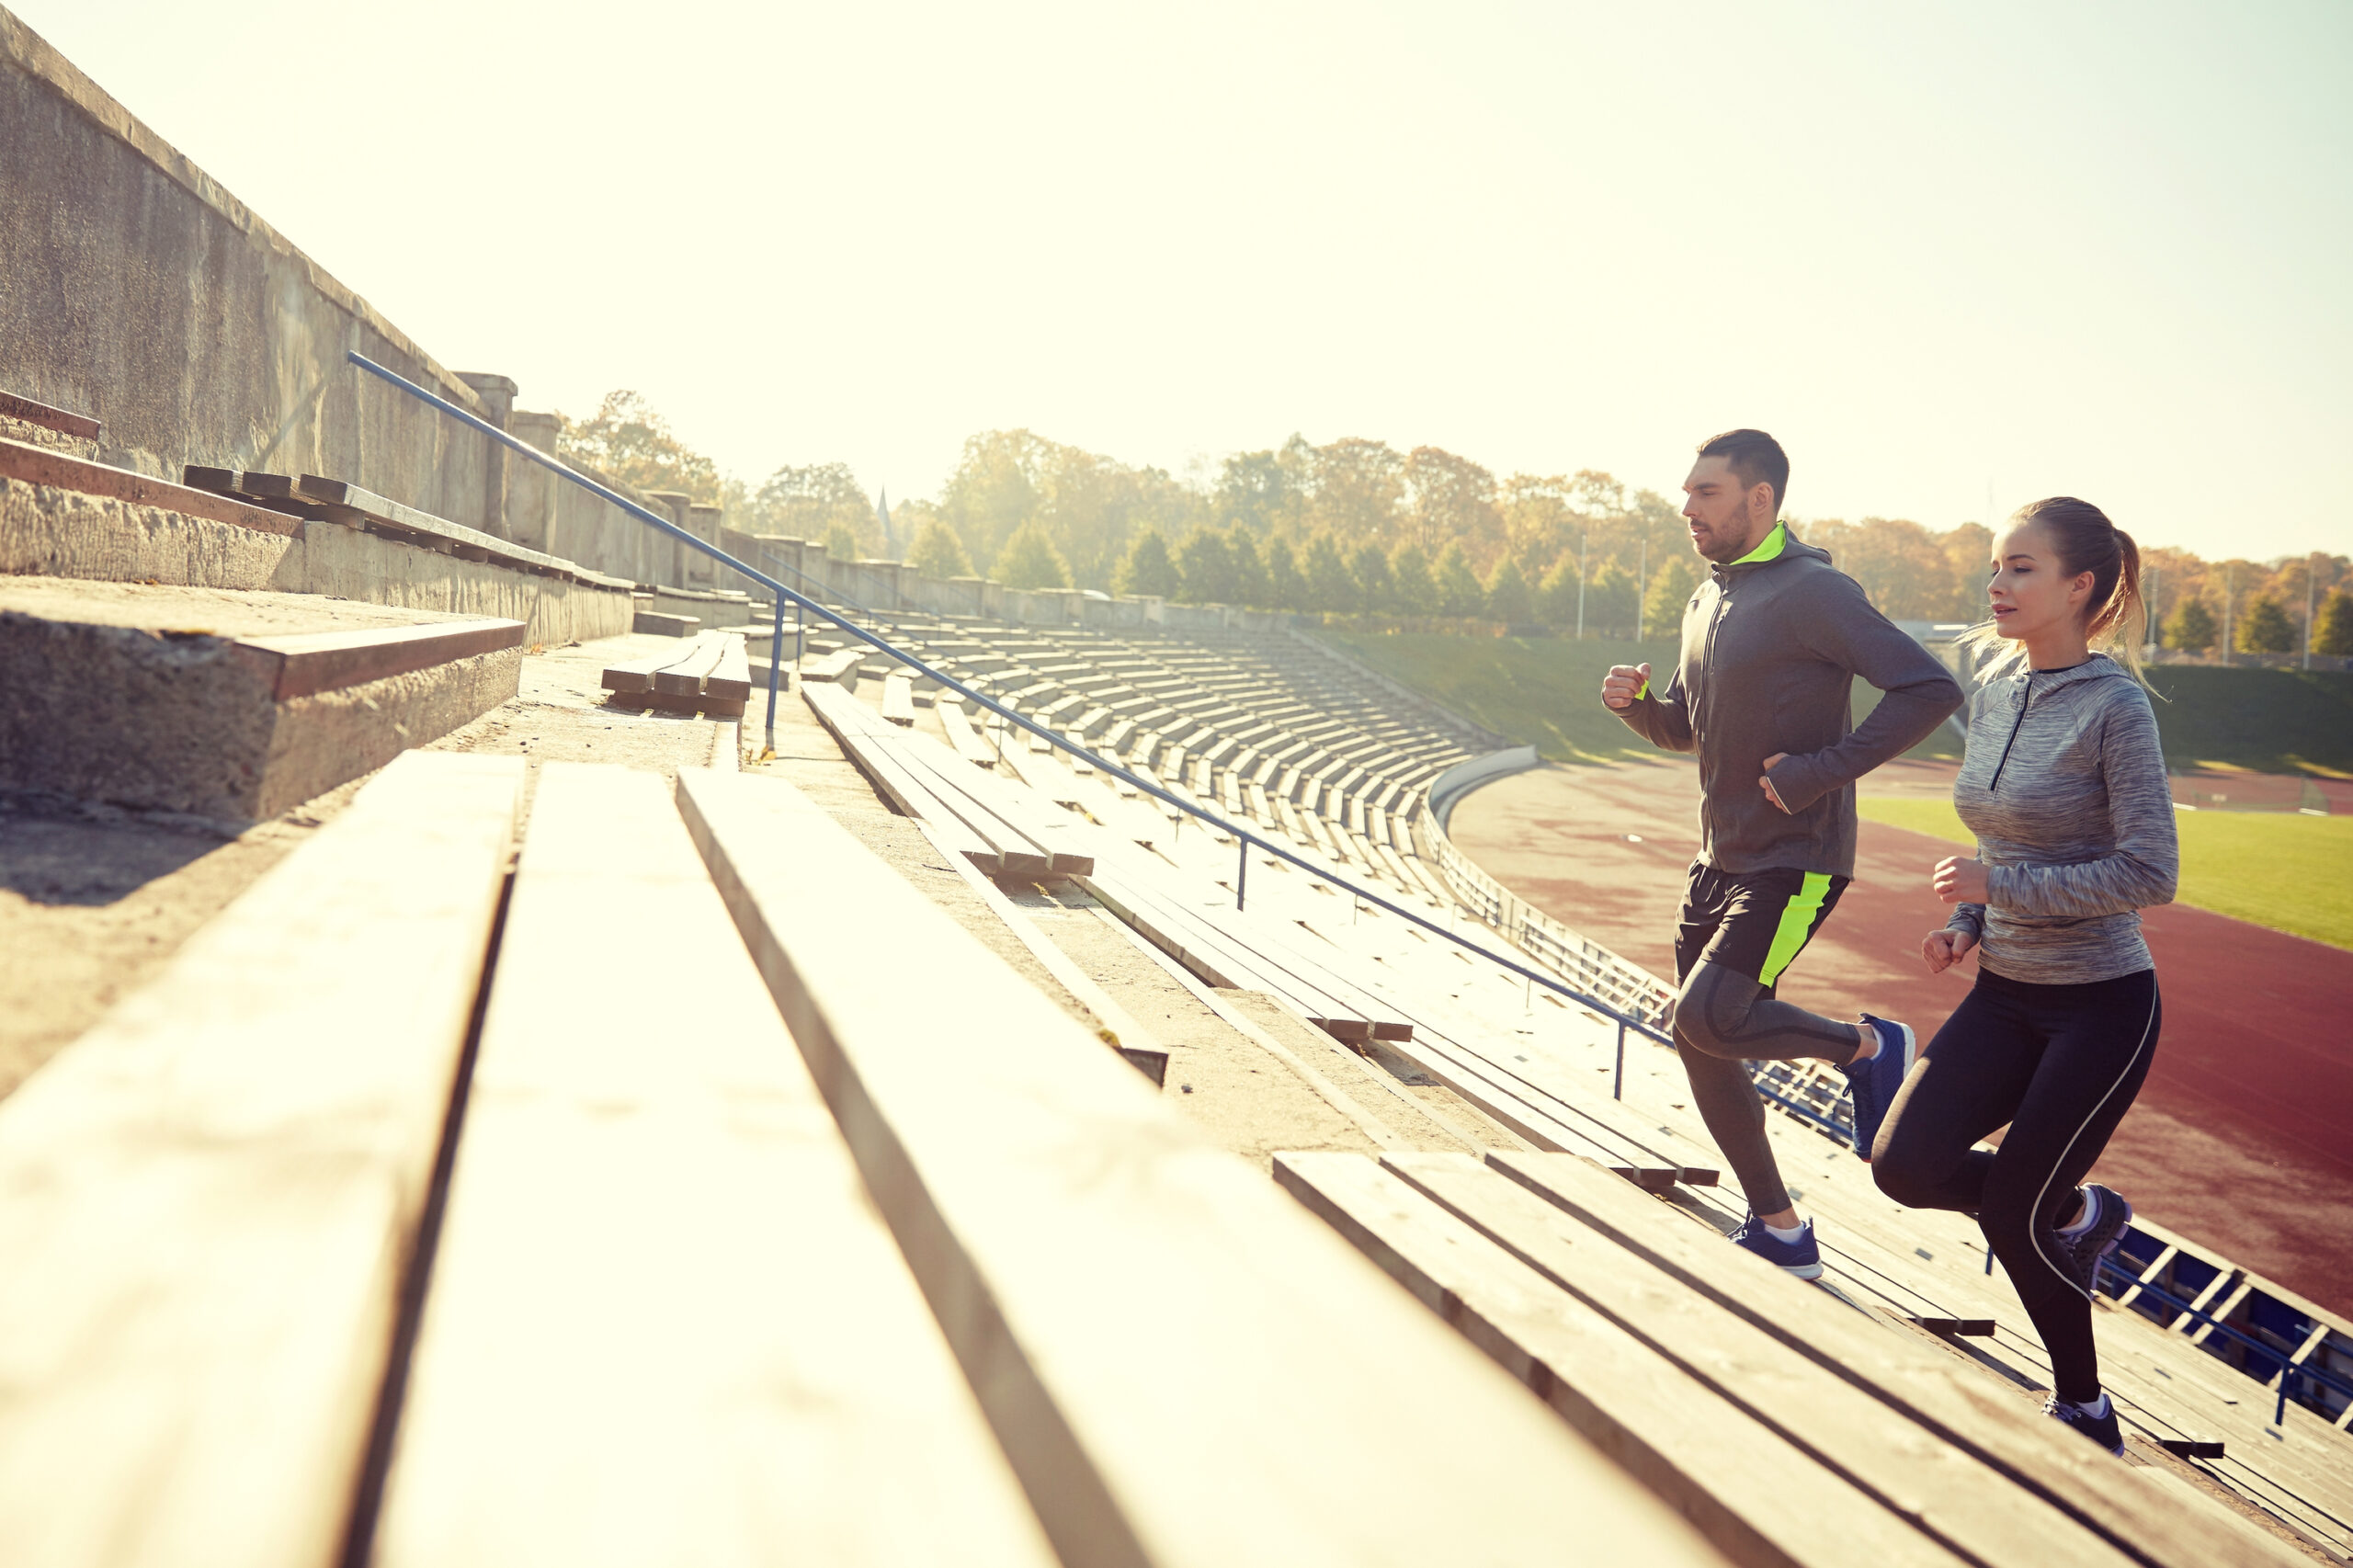 Runners should strengthen the legs to prevent back pain